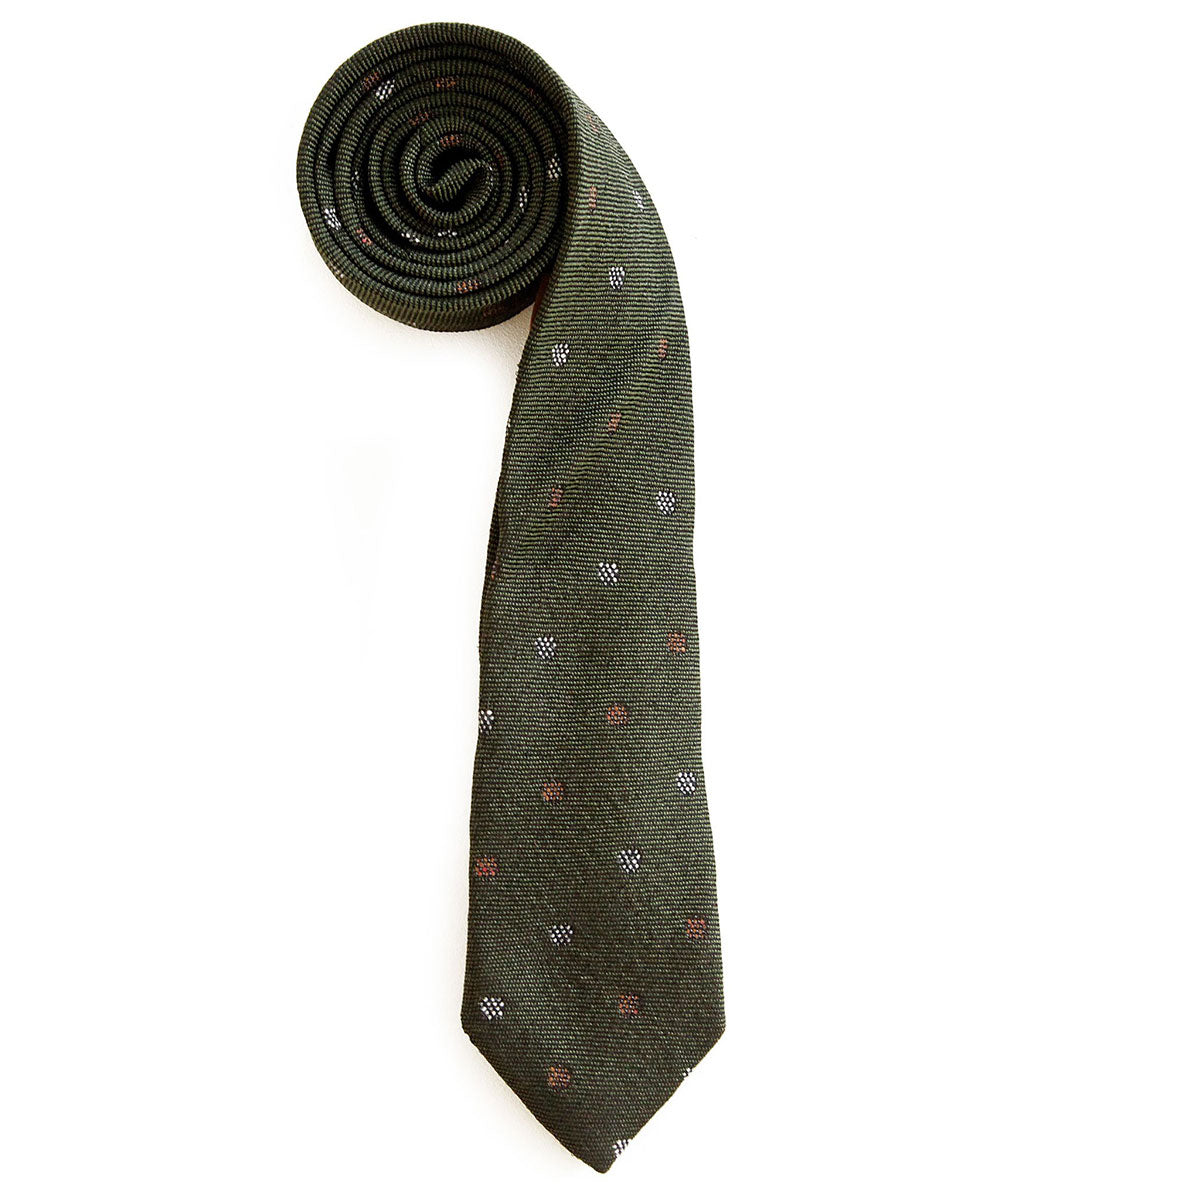 The Avery Necktie